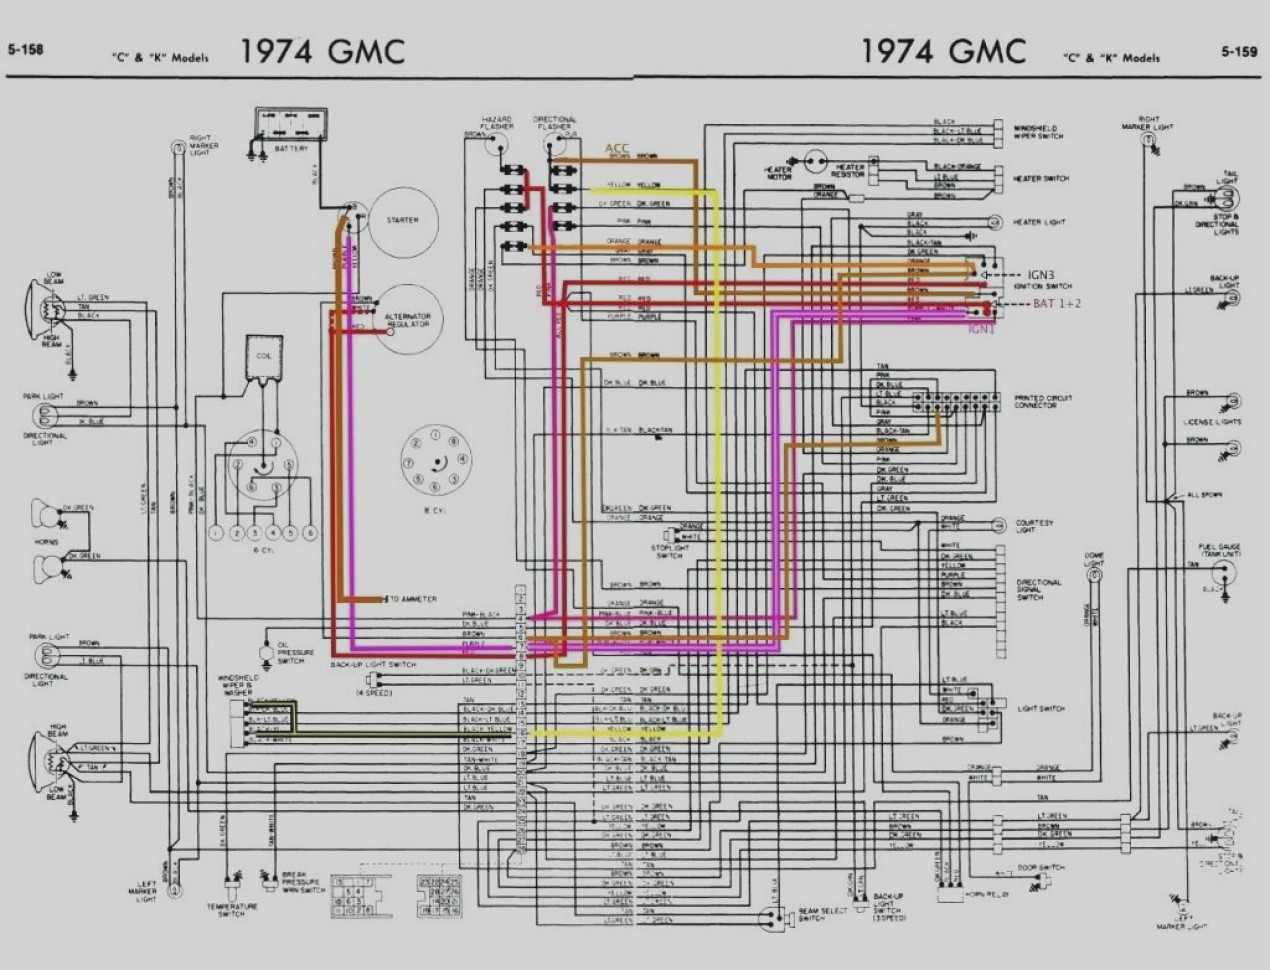 Chevy C10 Wiring Diagram 3 Way Electrical Schematic Wiring Diagram Begeboy Wiring Diagram Source